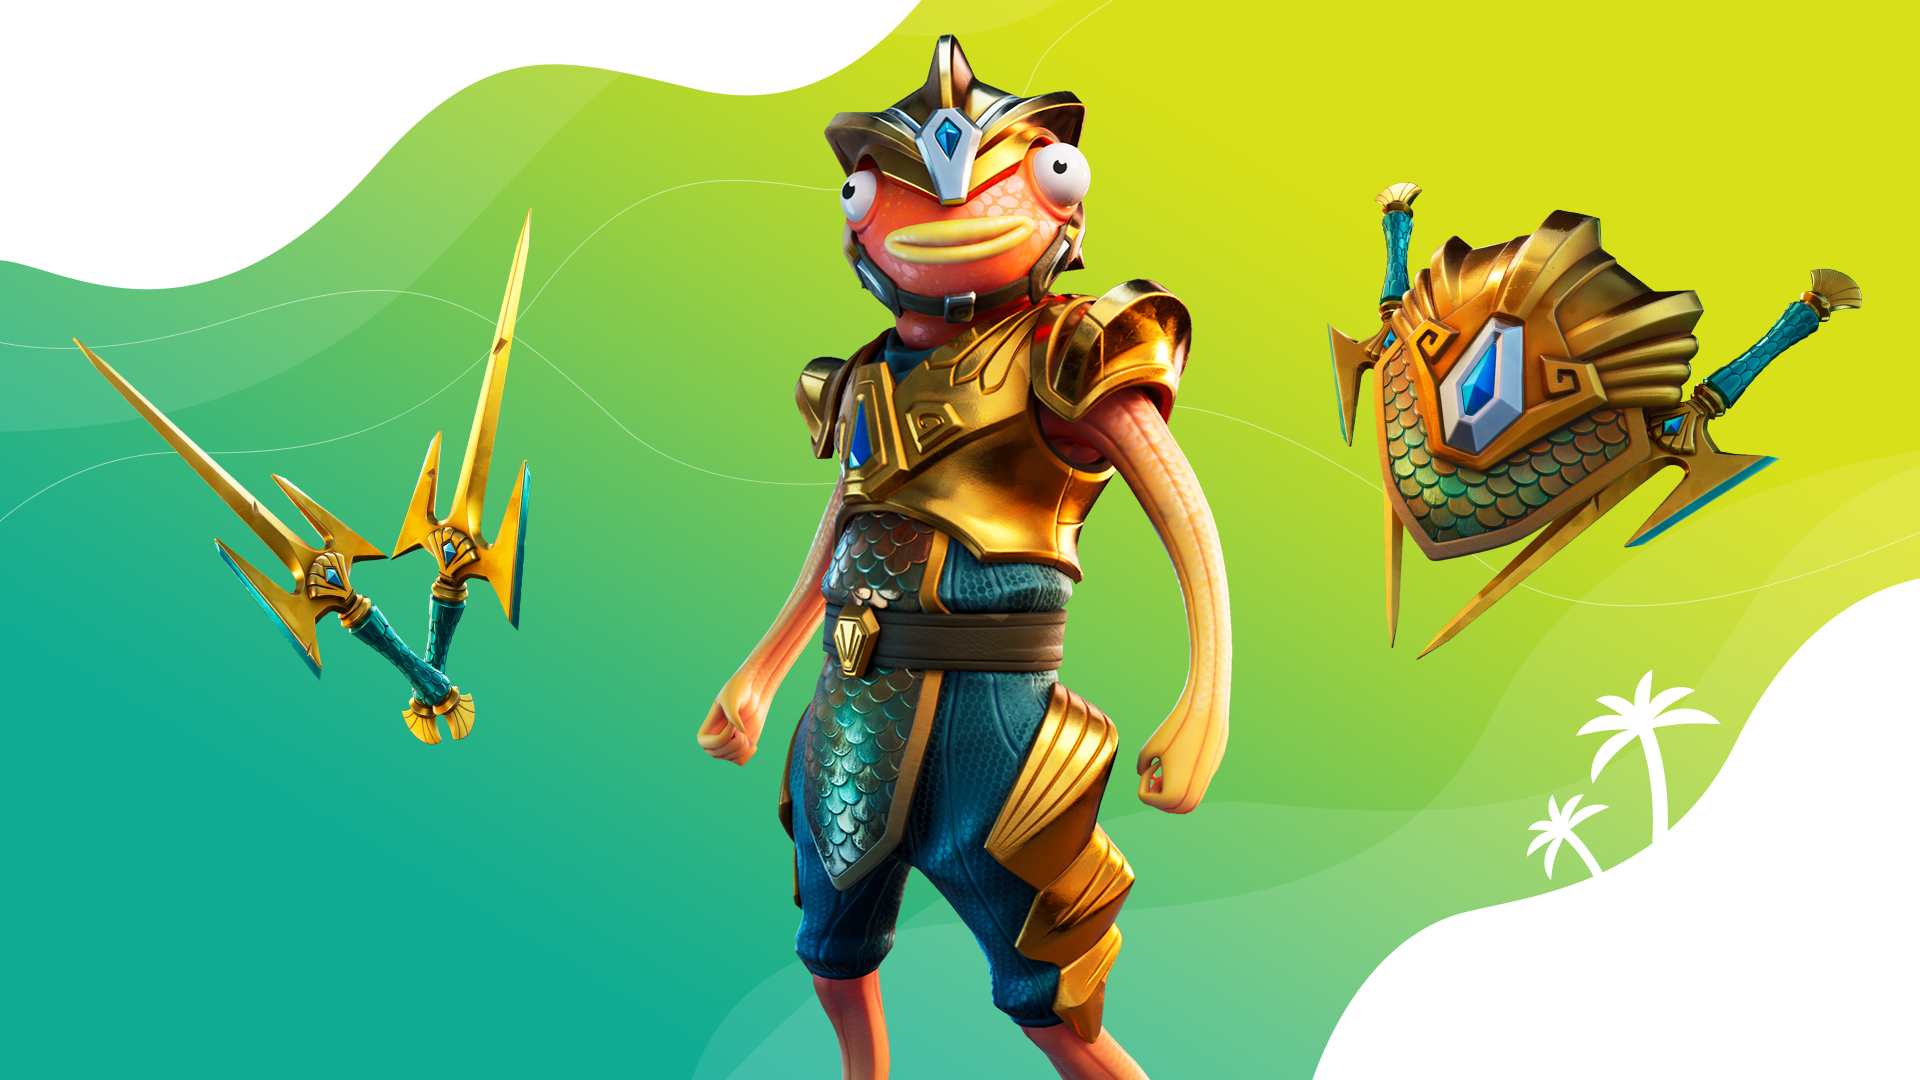 Fnbr Co Fortnite Cosmetics On Twitter Fortnite News Update Atlantean Fishstick Undersea Royalty Comes In All Shapes And Fishes